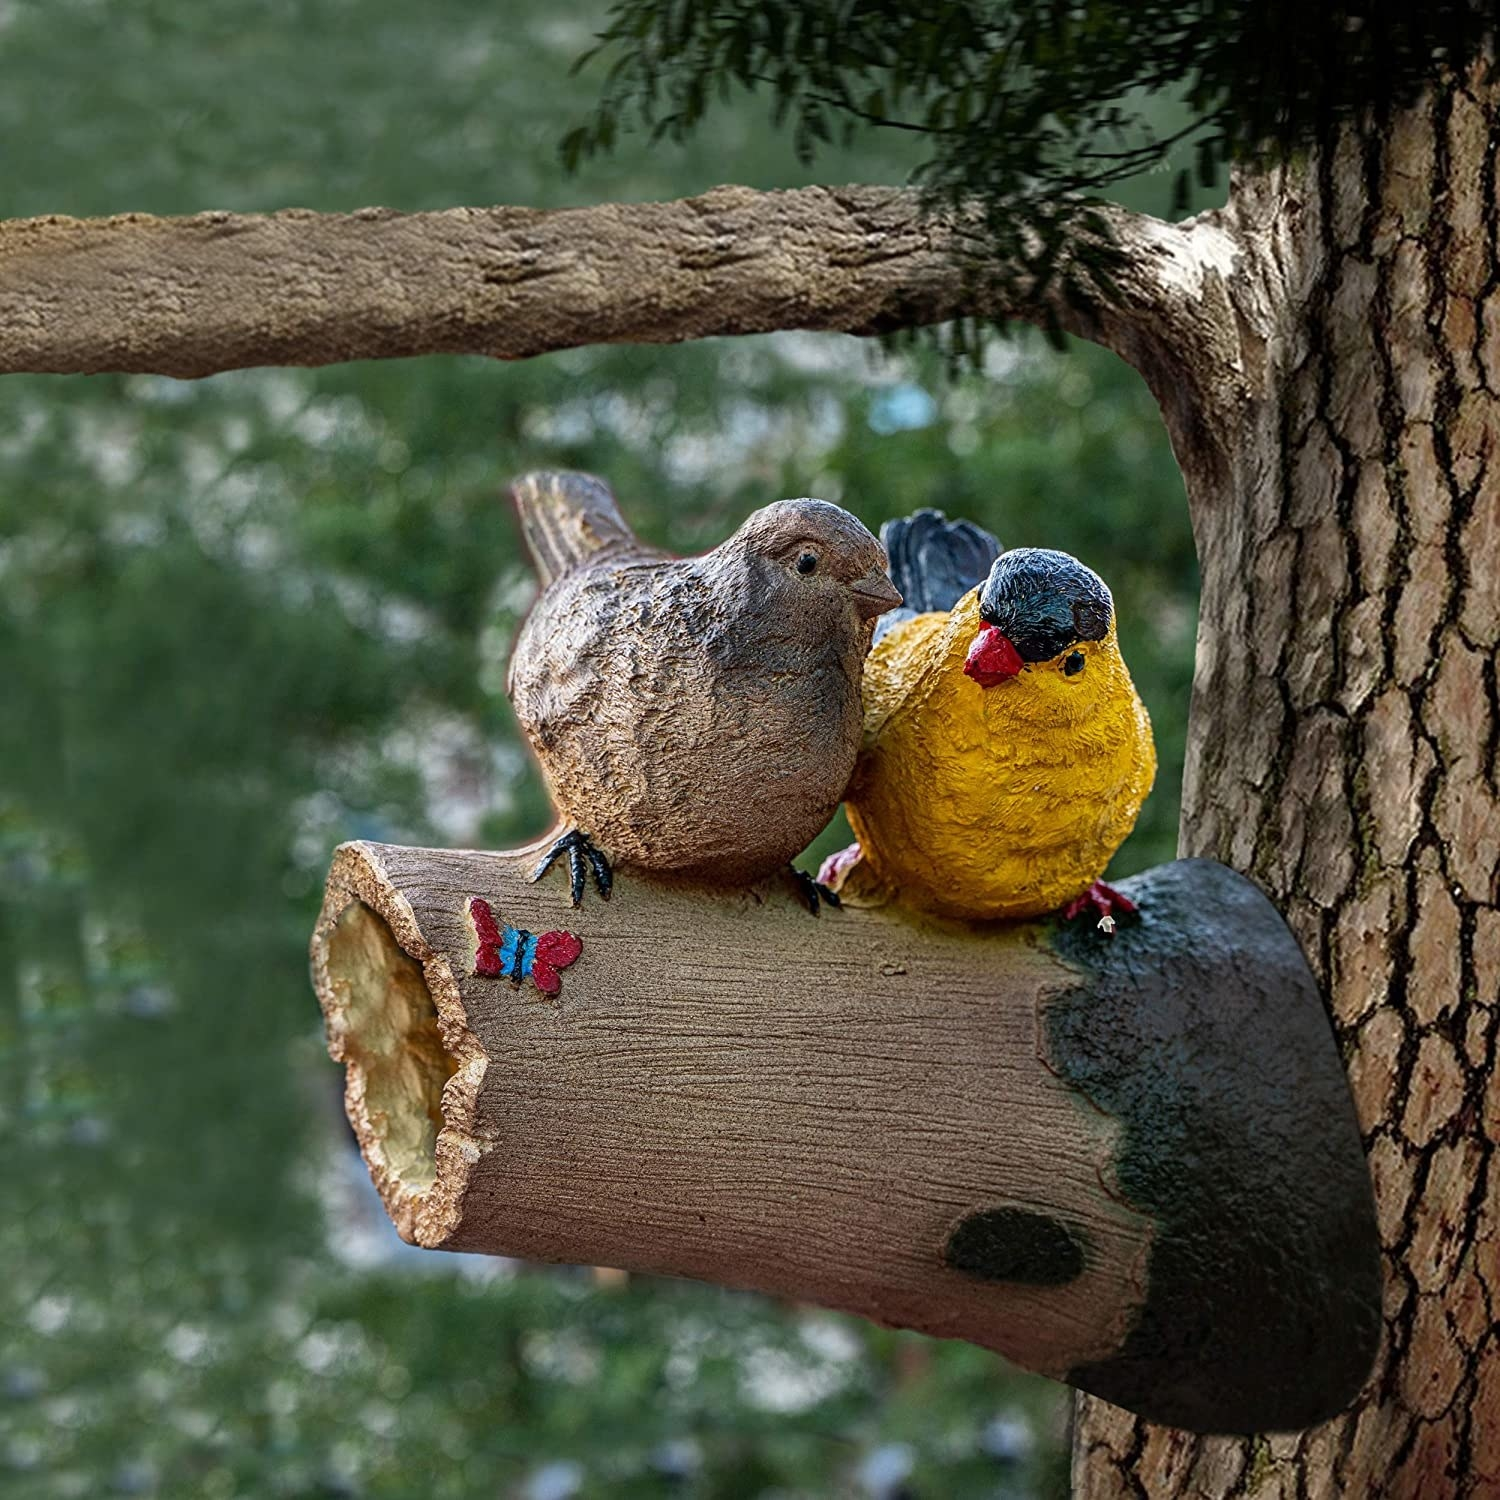 A garden decoration of two birds sitting on a branch.